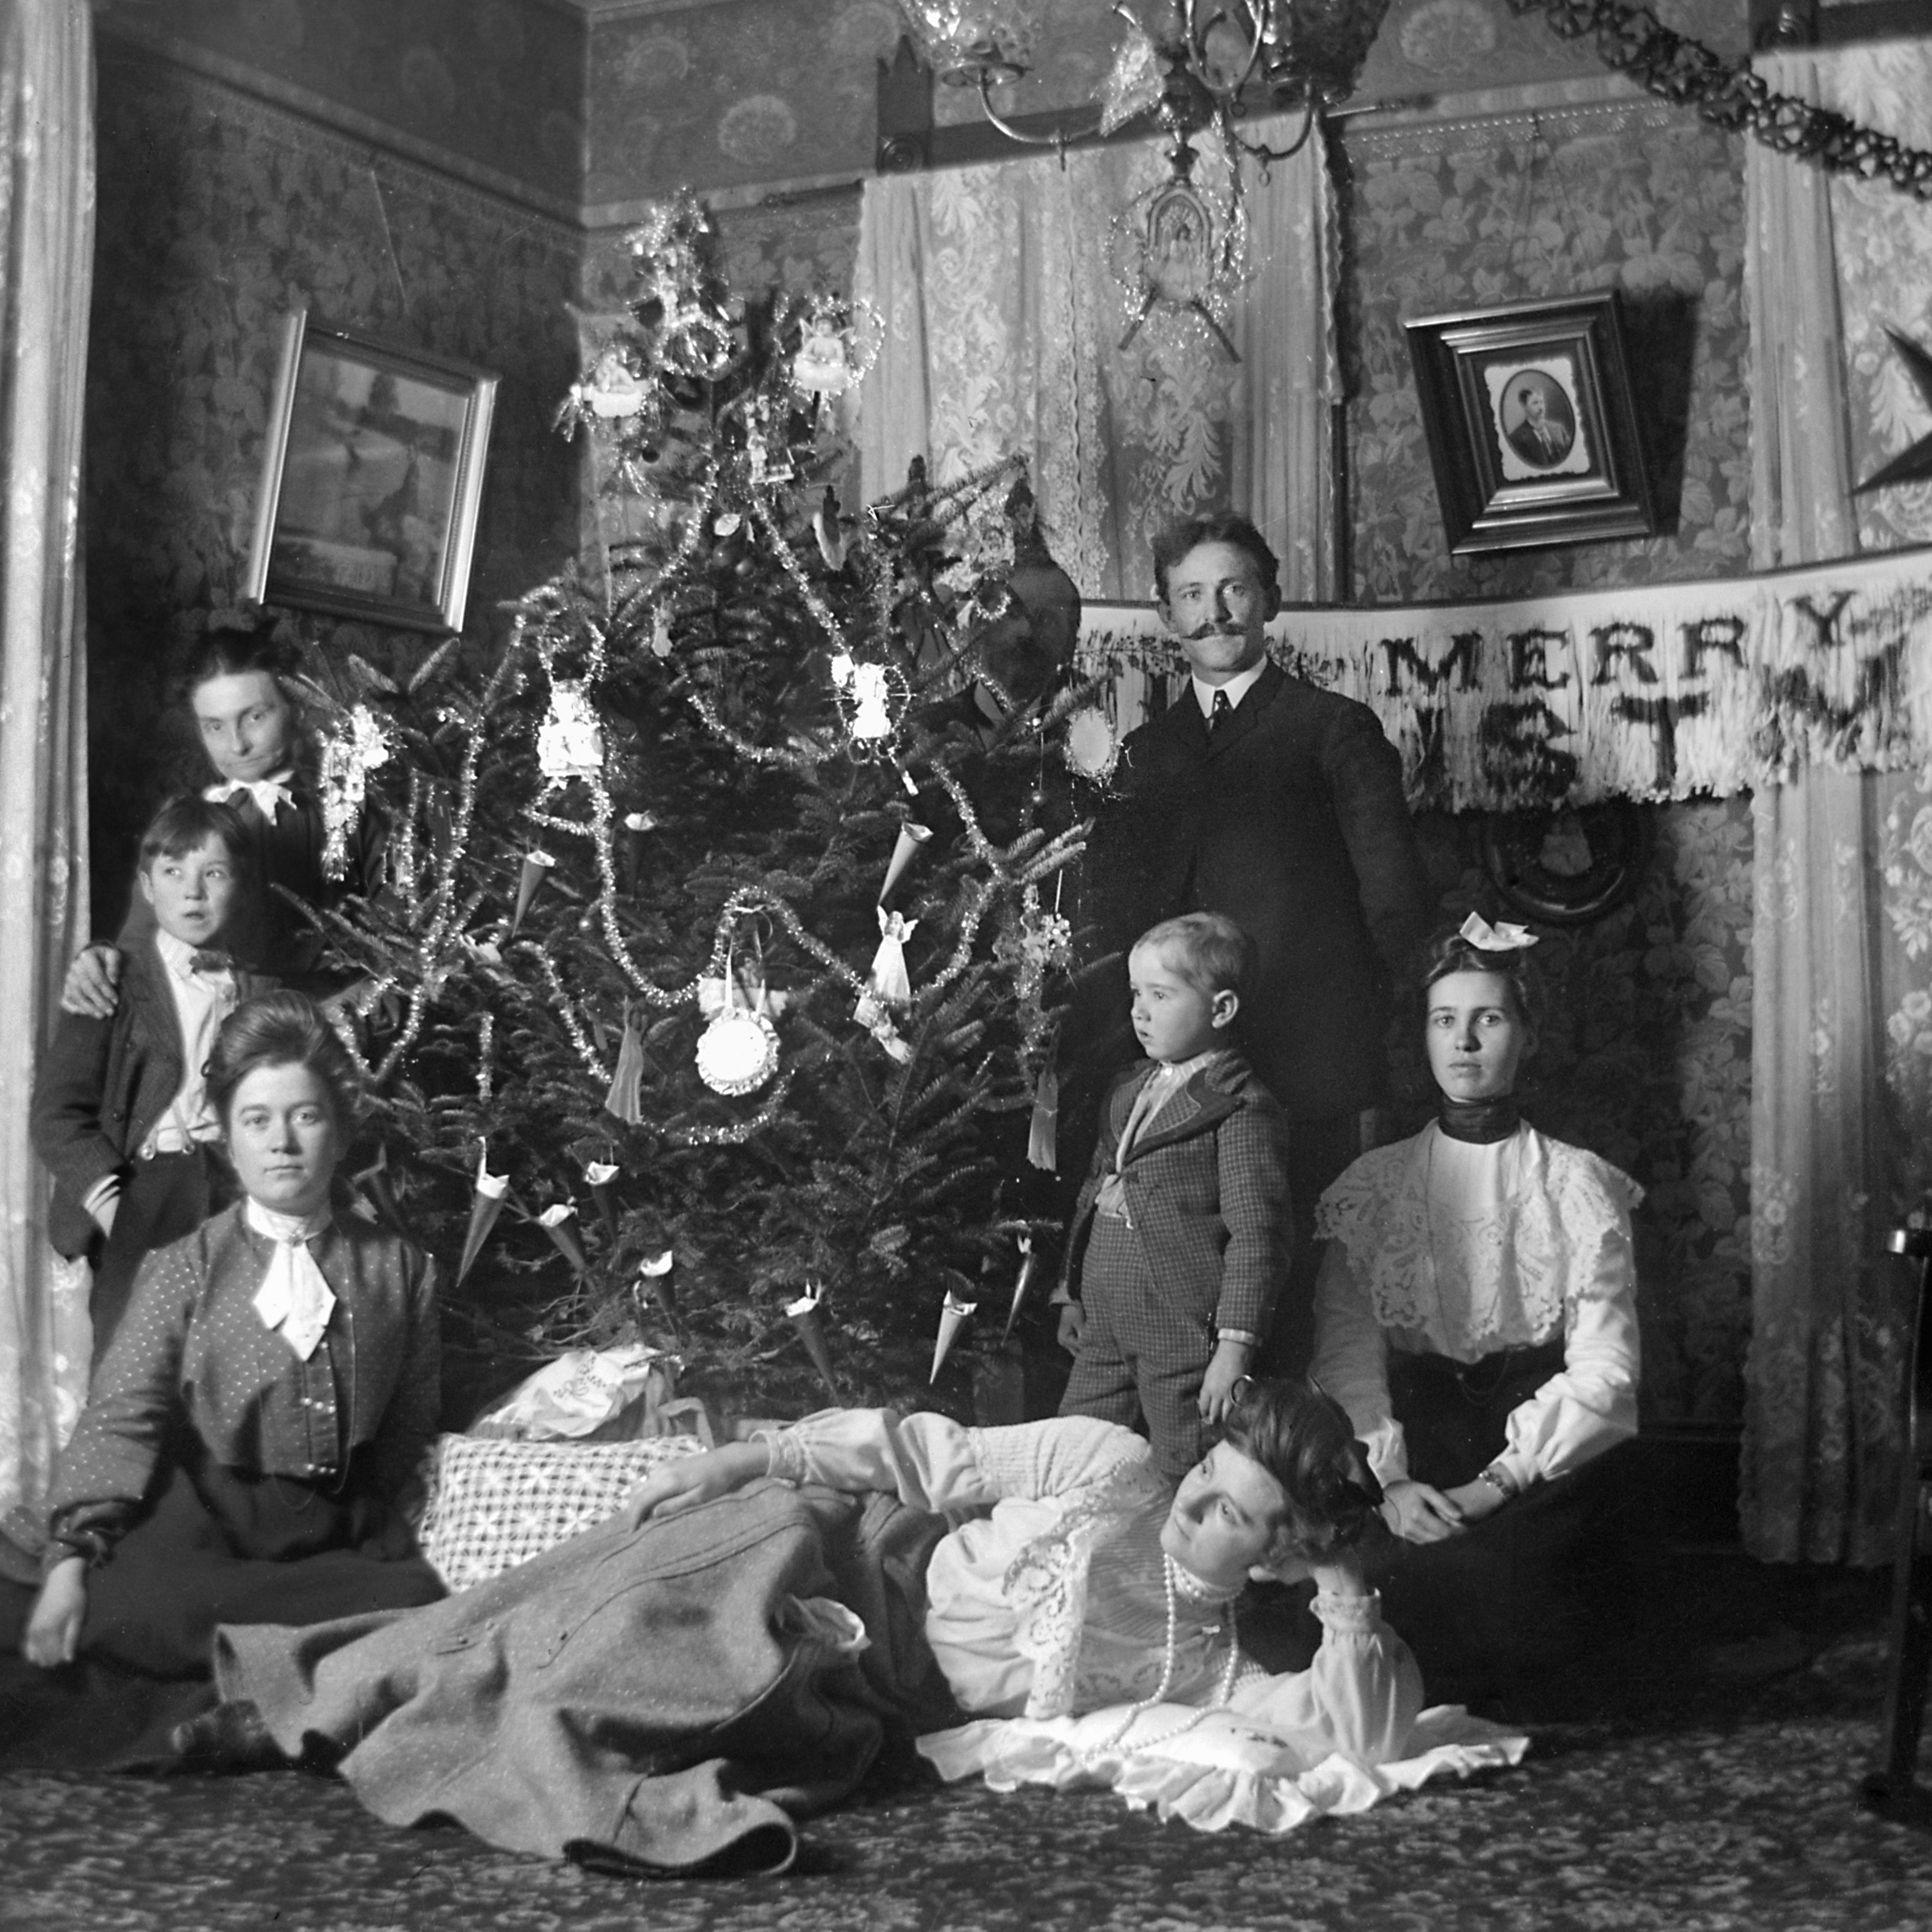 Christmas Traditions in the 19th Century